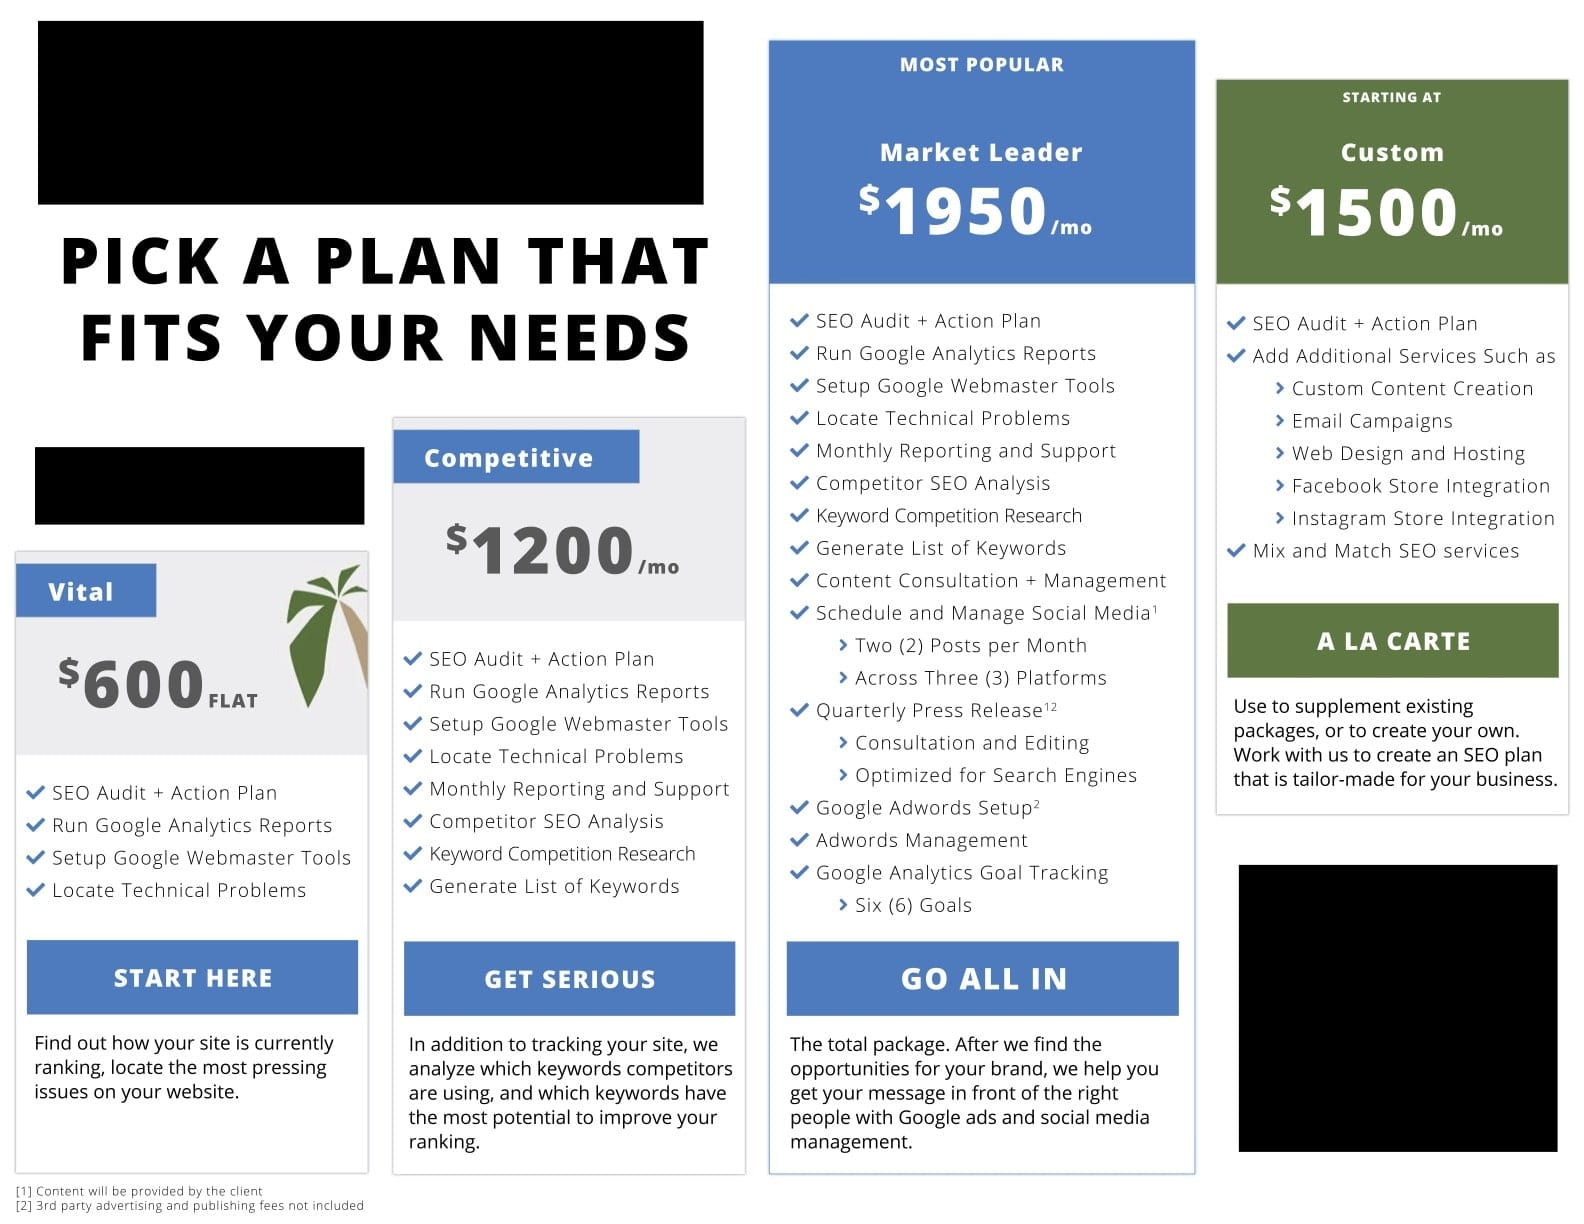 picture of seo plans package